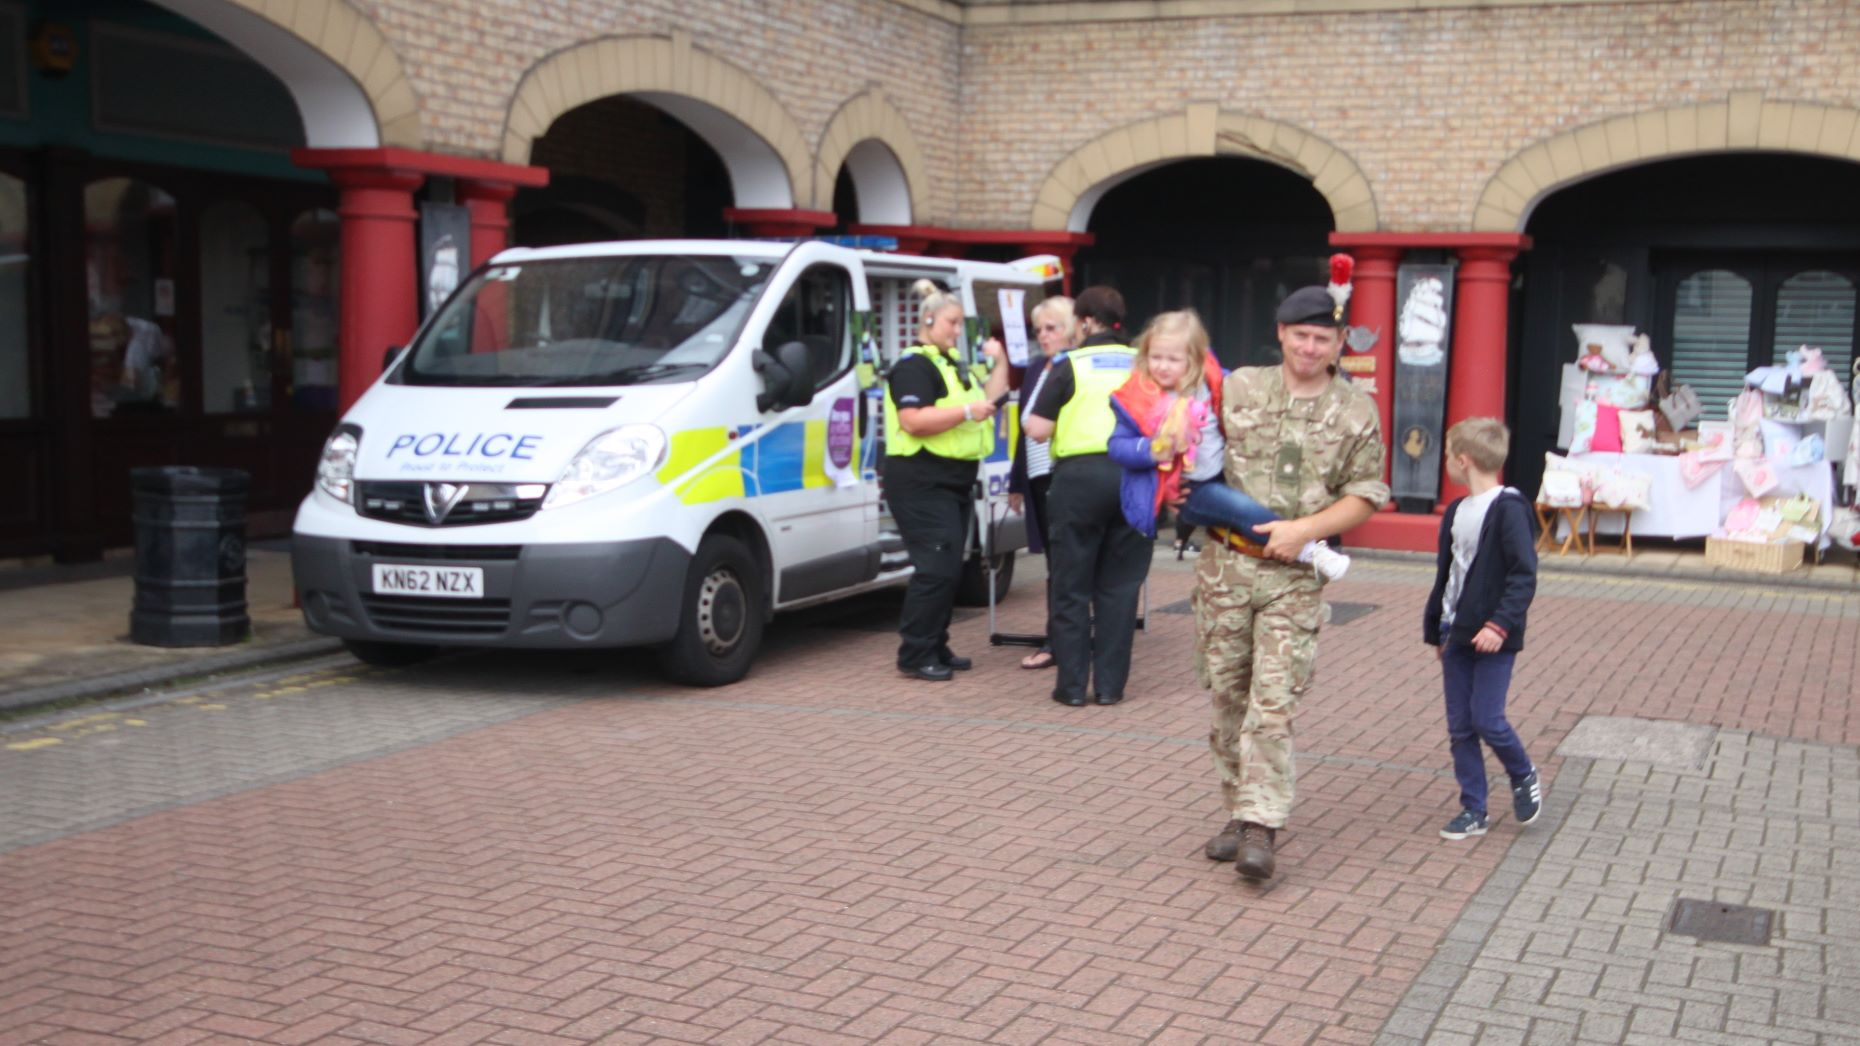 Fifth Fusiliers and Northumbria Police, St Peter's Fete